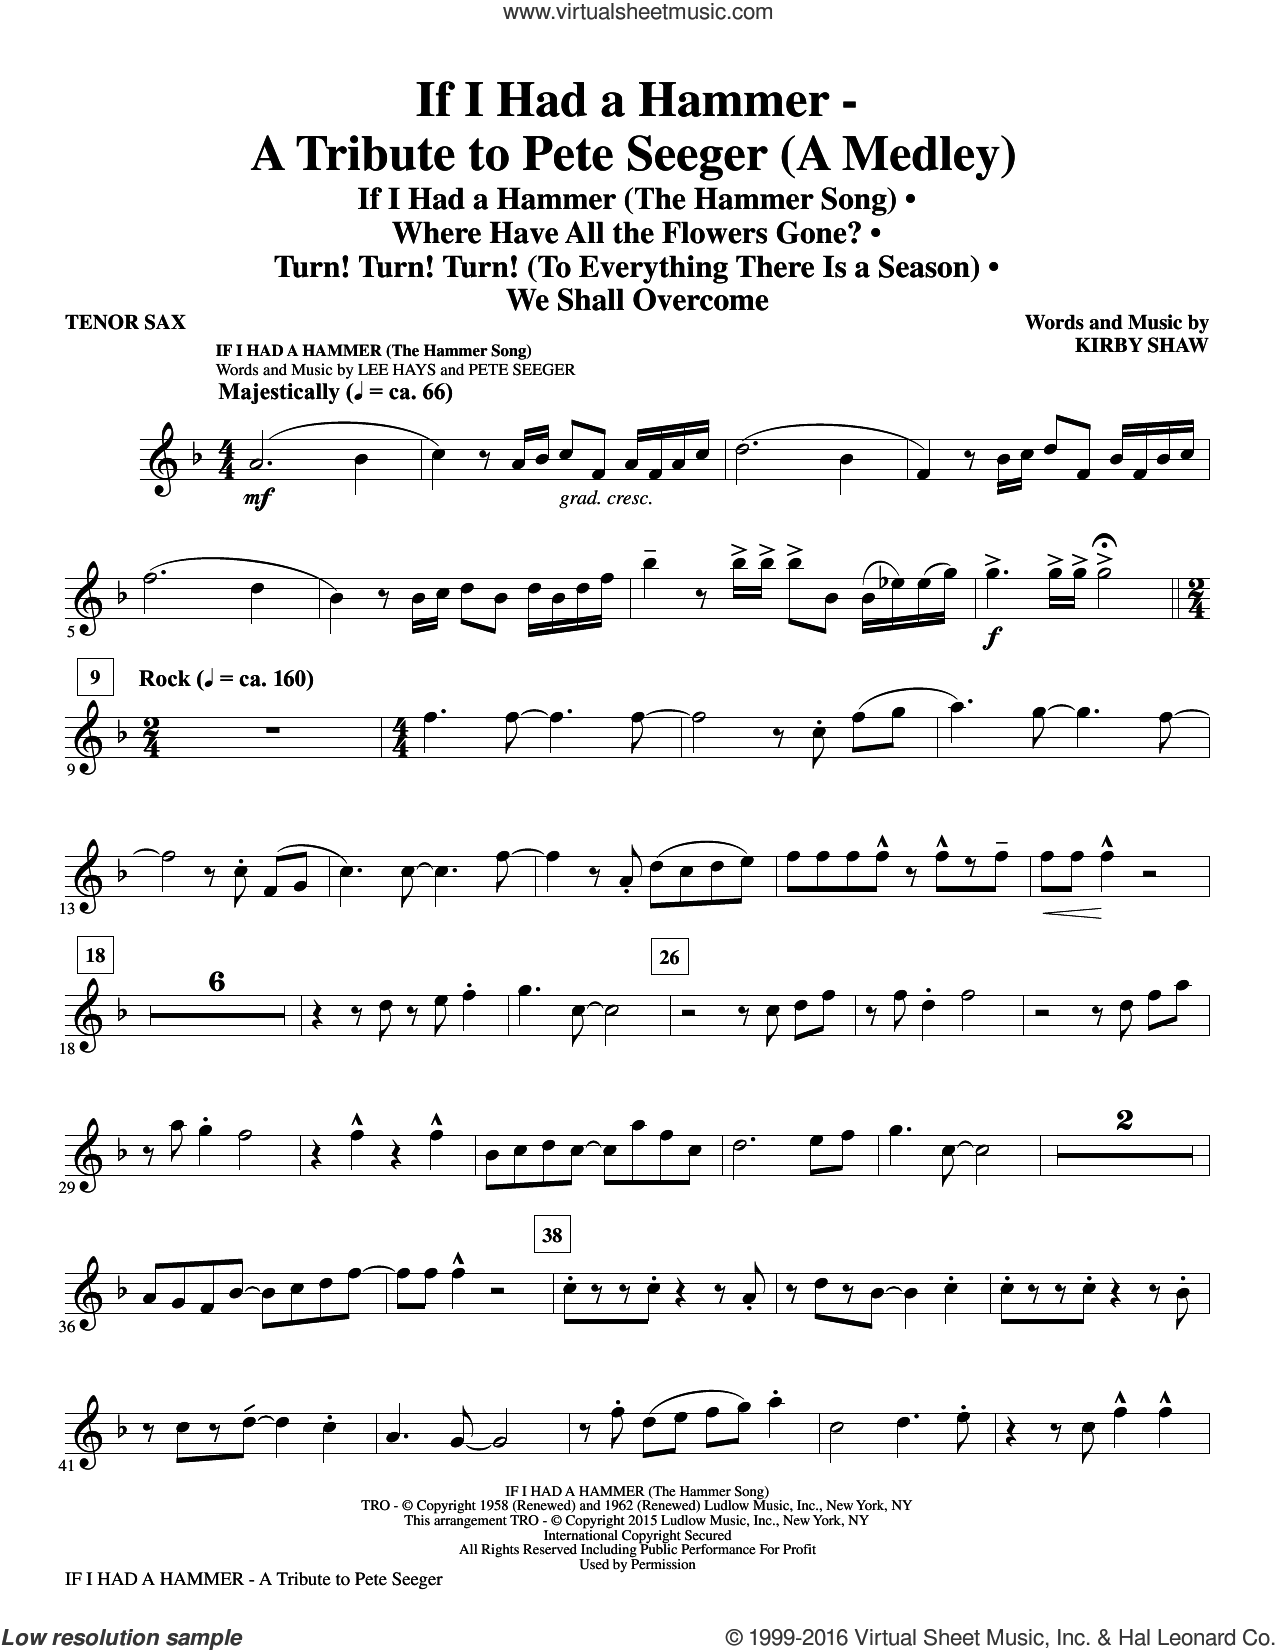 If I Had A Hammer, a tribute to pete seeger sheet music for orchestra/band (Bb tenor saxophone) by Pete Seeger, Kirby Shaw, Peter, Paul & Mary and Lee Hays. Score Image Preview.